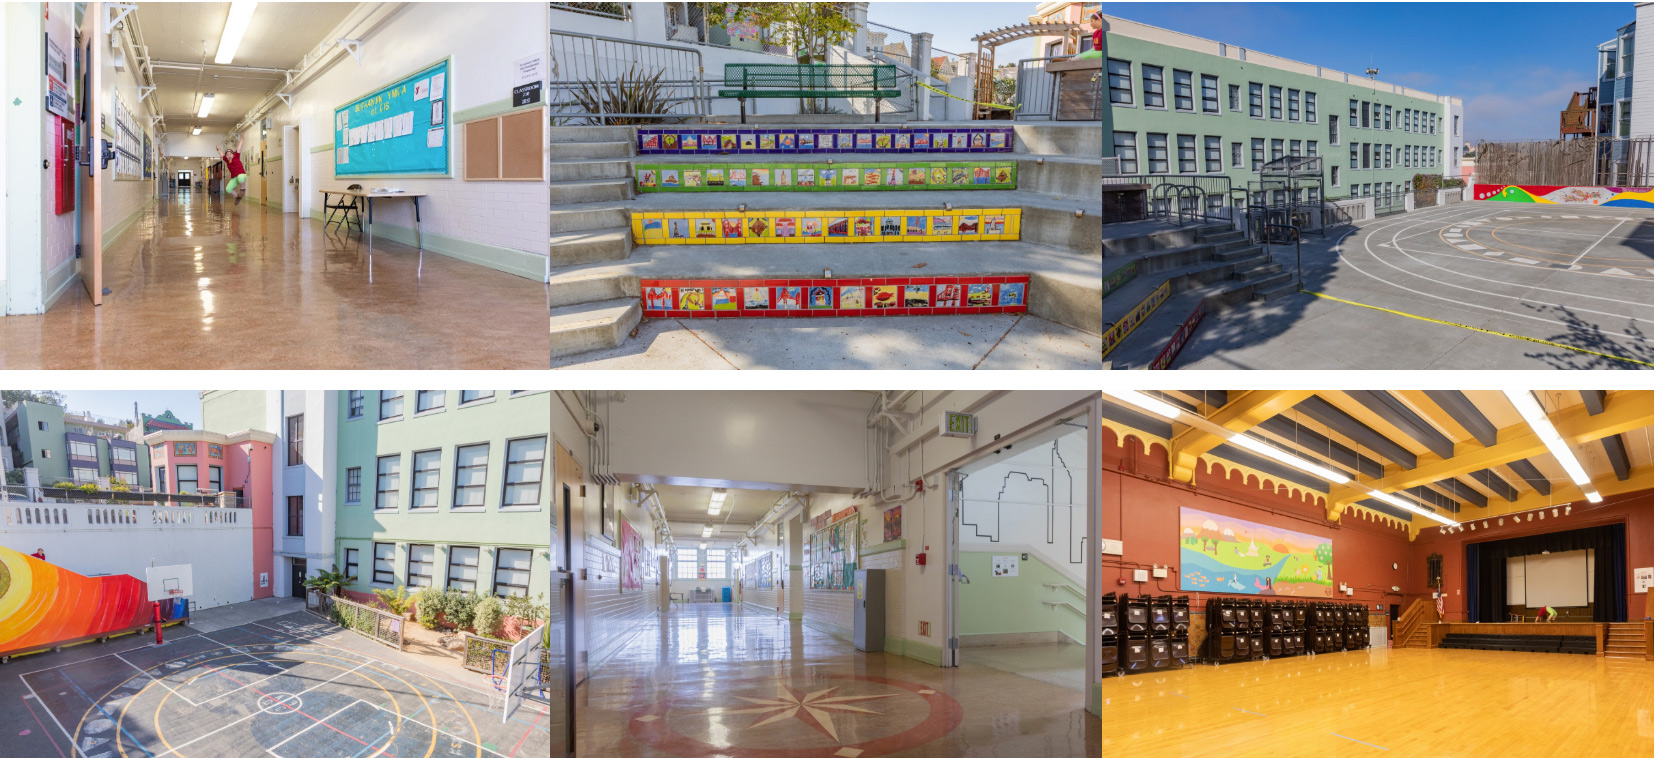 Chinese Immersion School group images of school site including yards, classrooms and auditorium